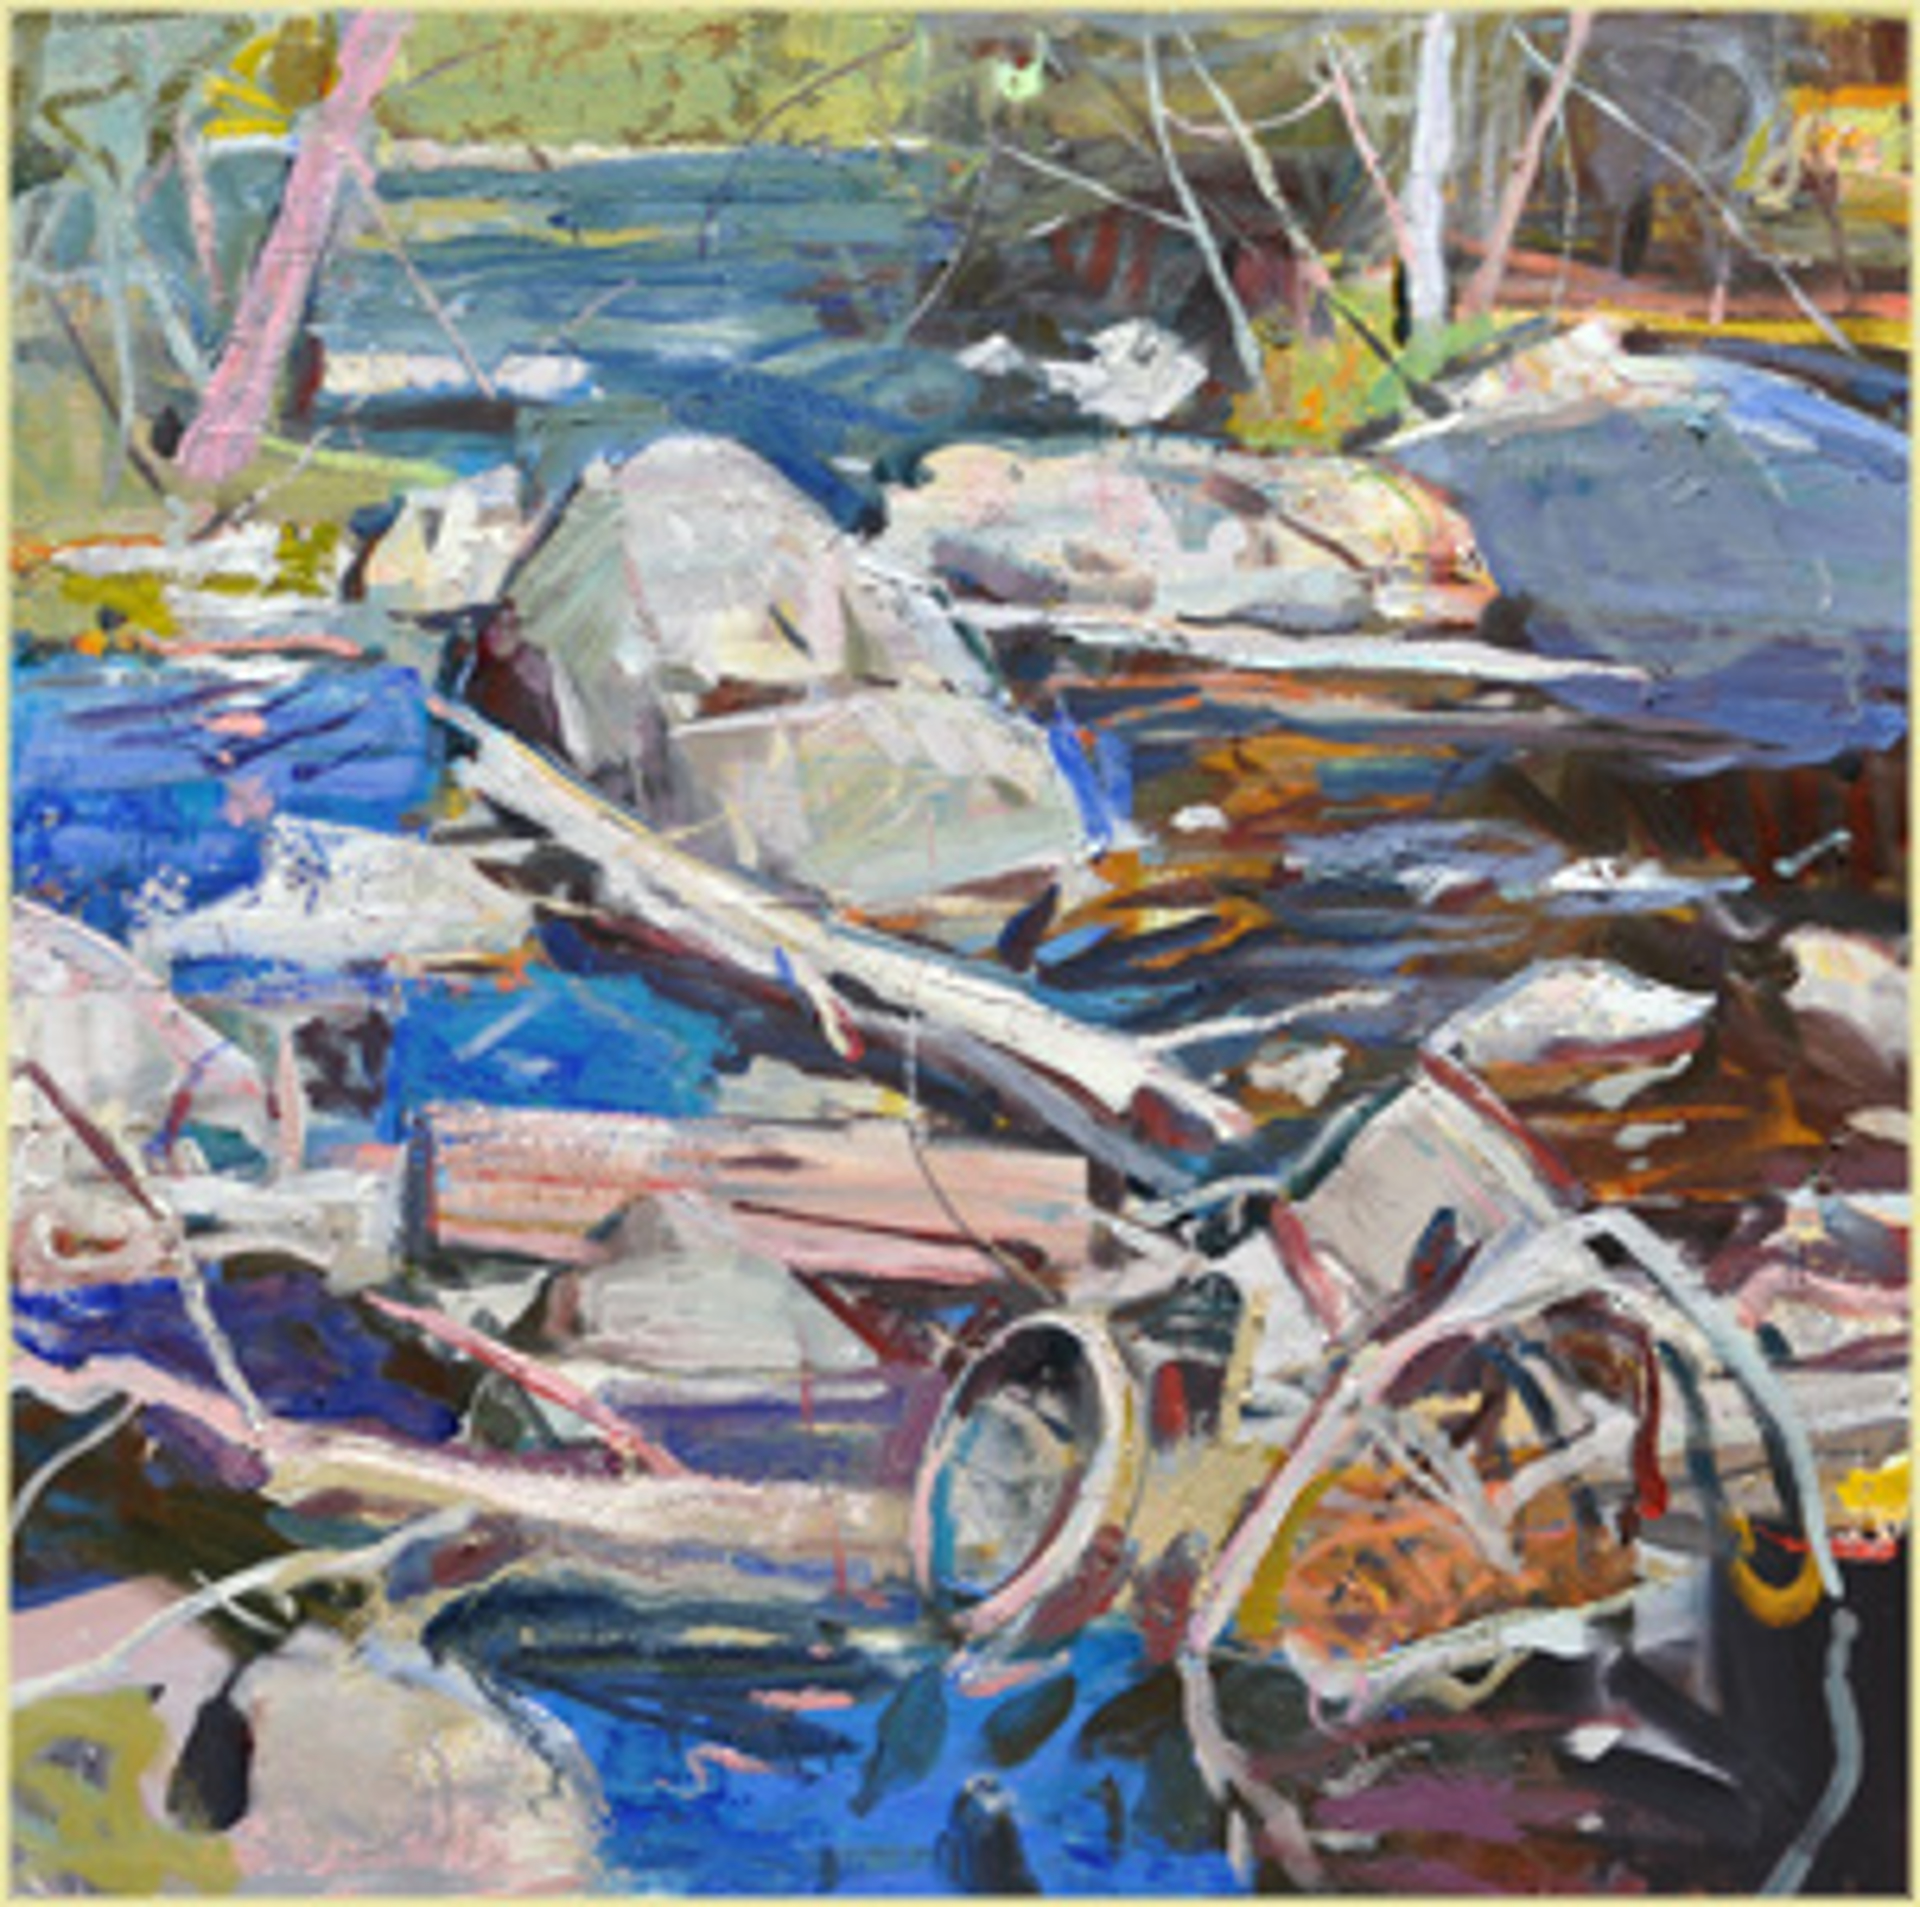 Creek Collections by Kevin Weckbach